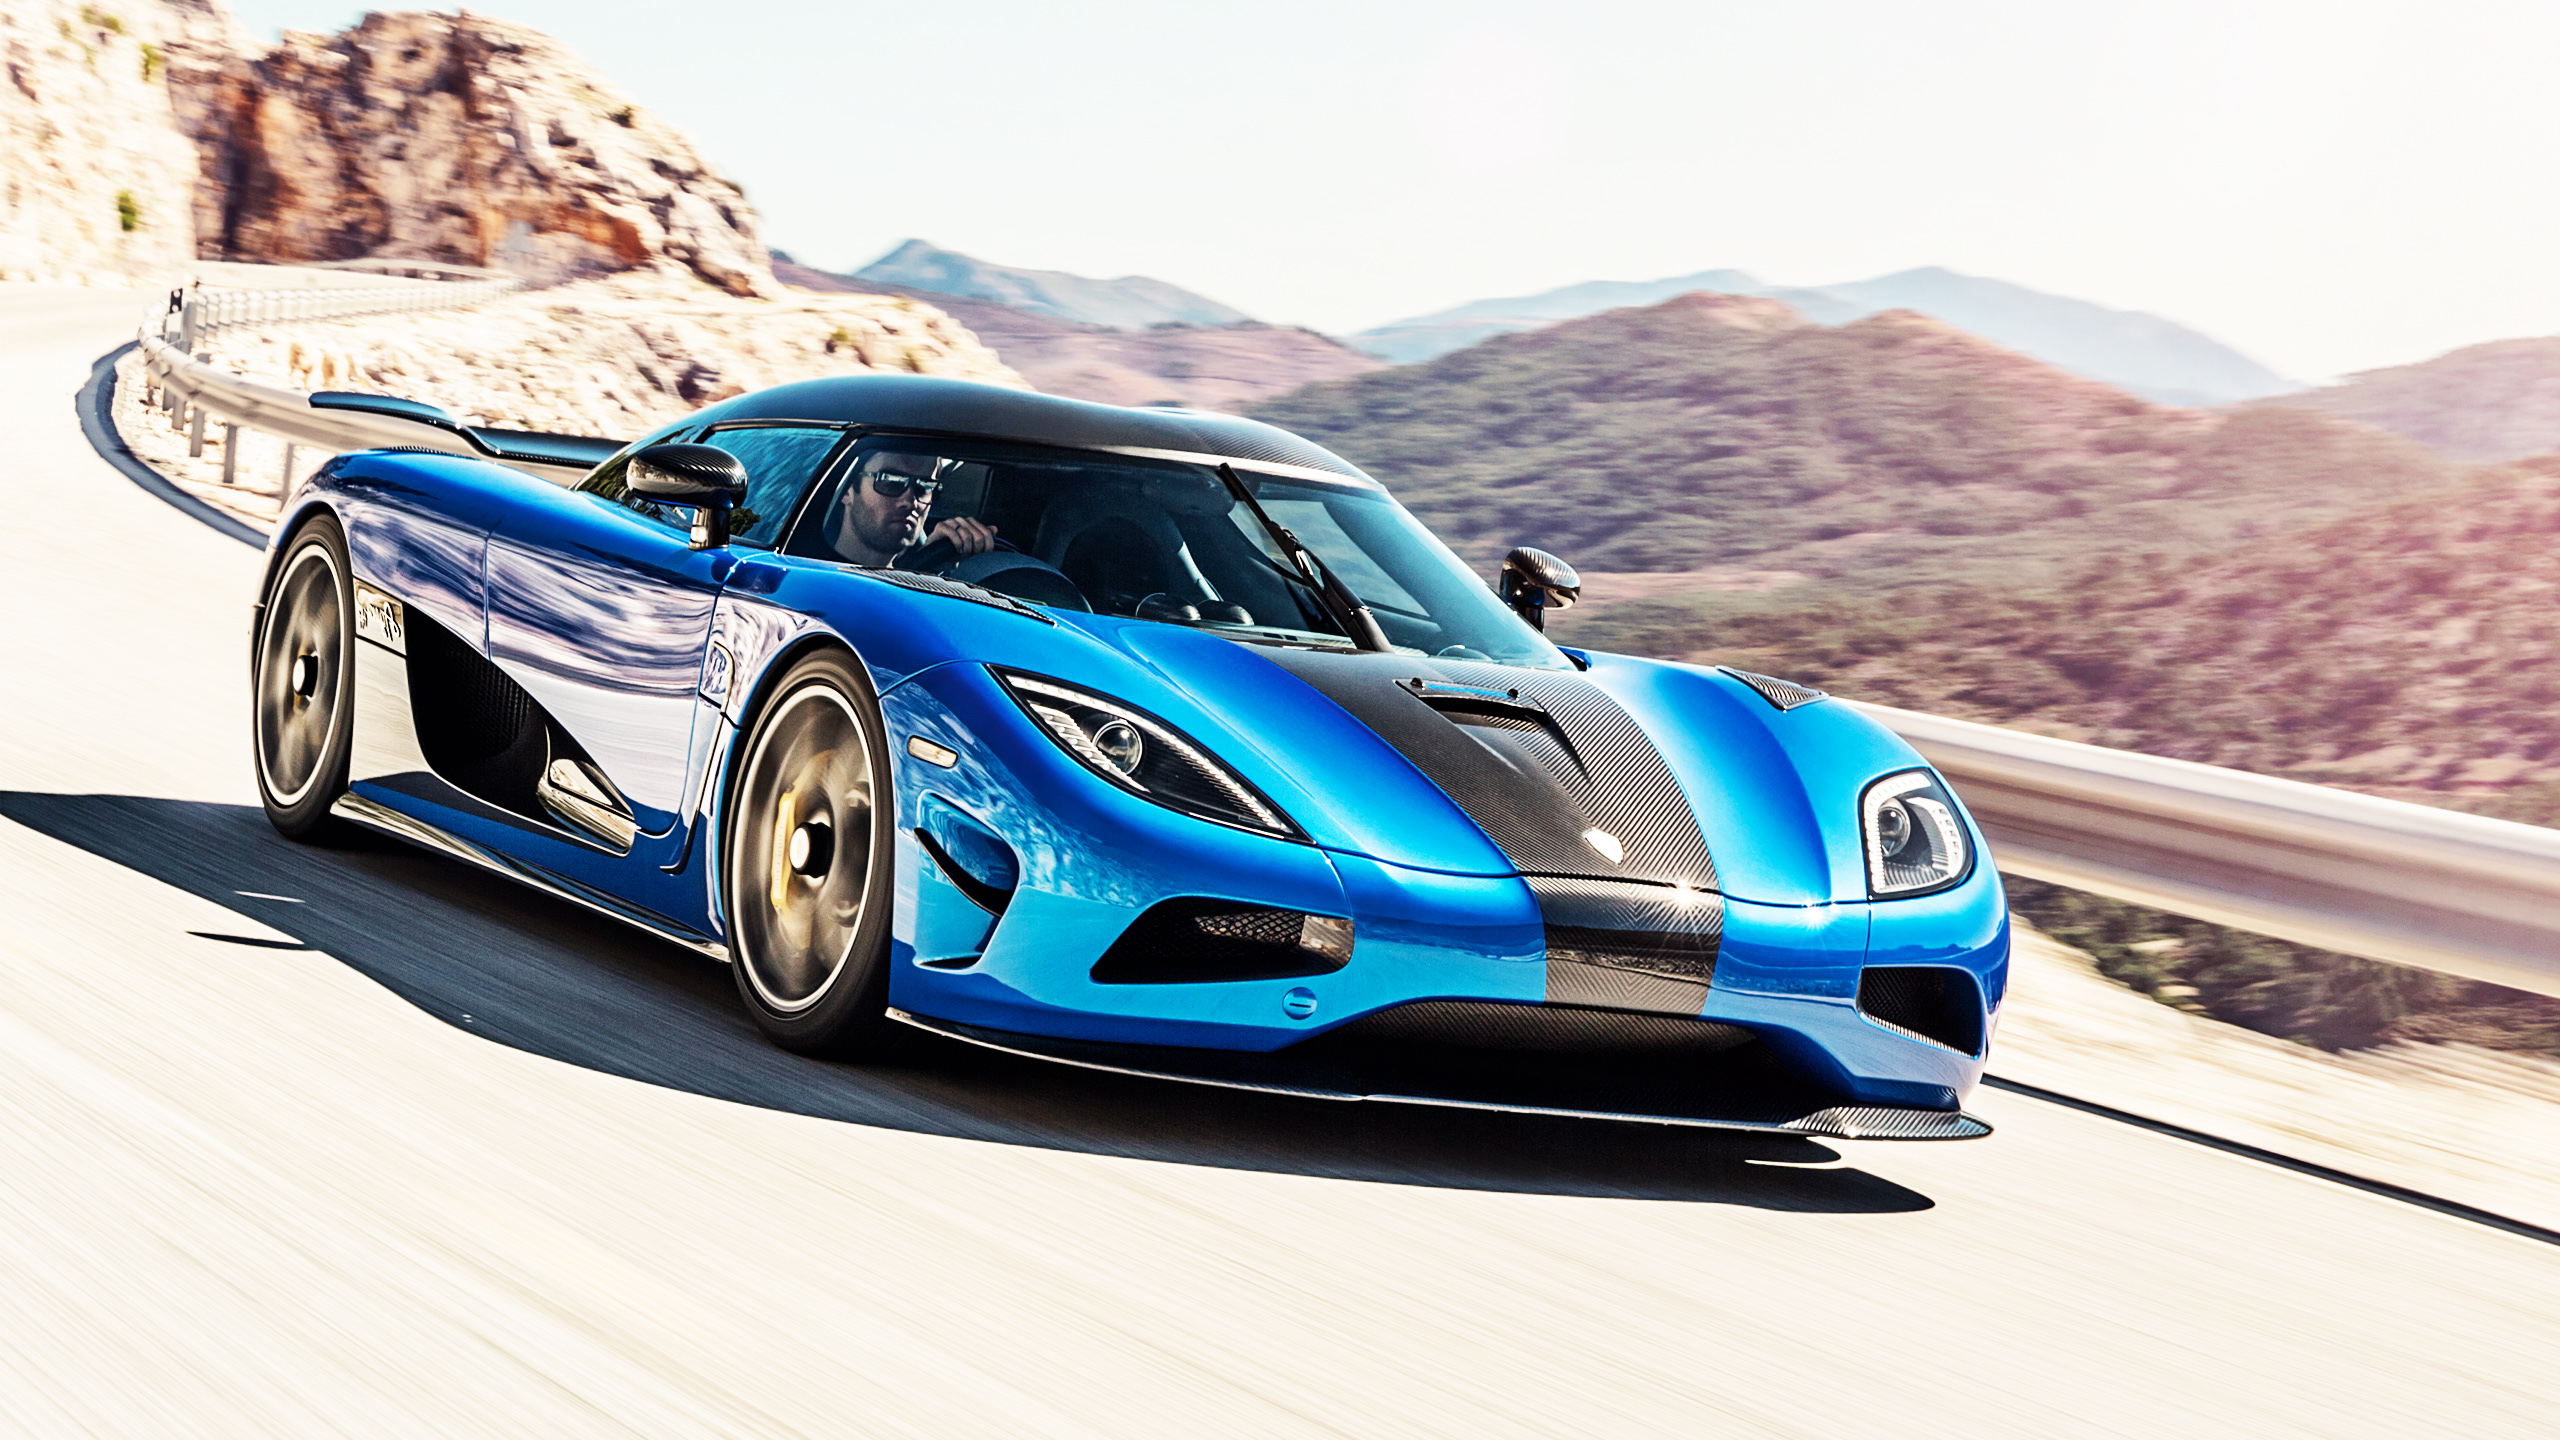 koenigsegg wallpapers 4k full hd pictures